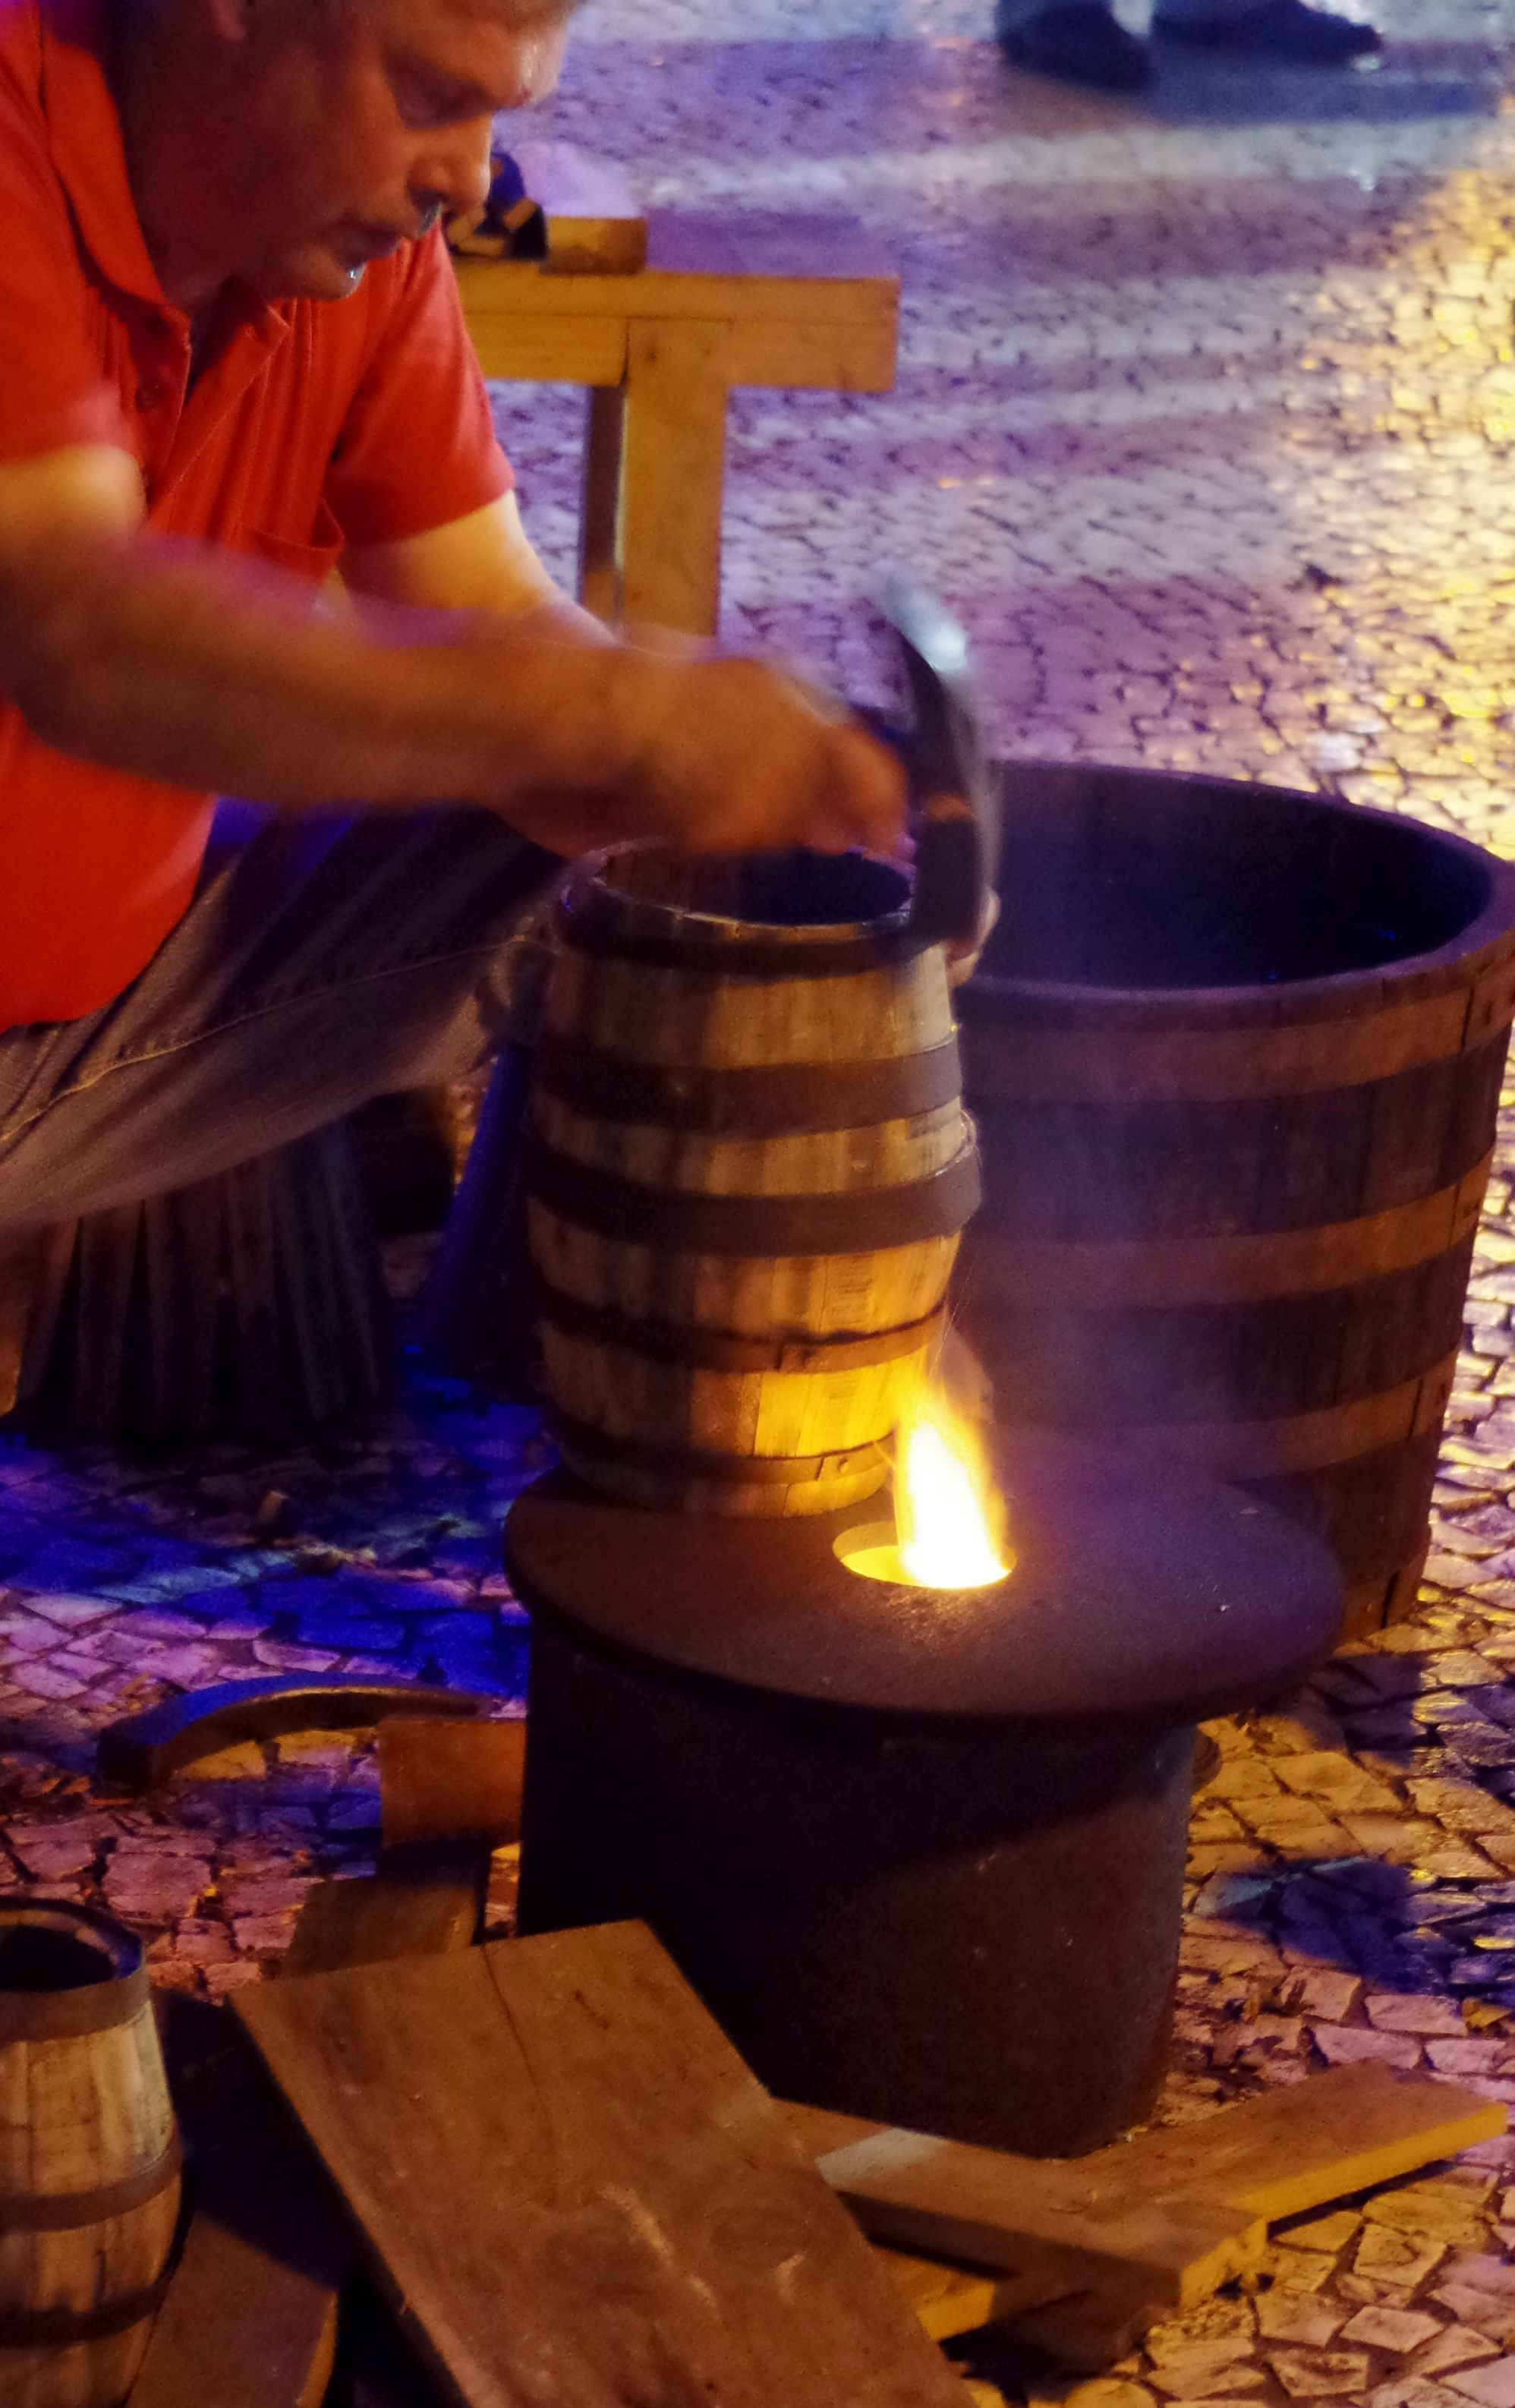 Barrel making at the Madeira wine festival